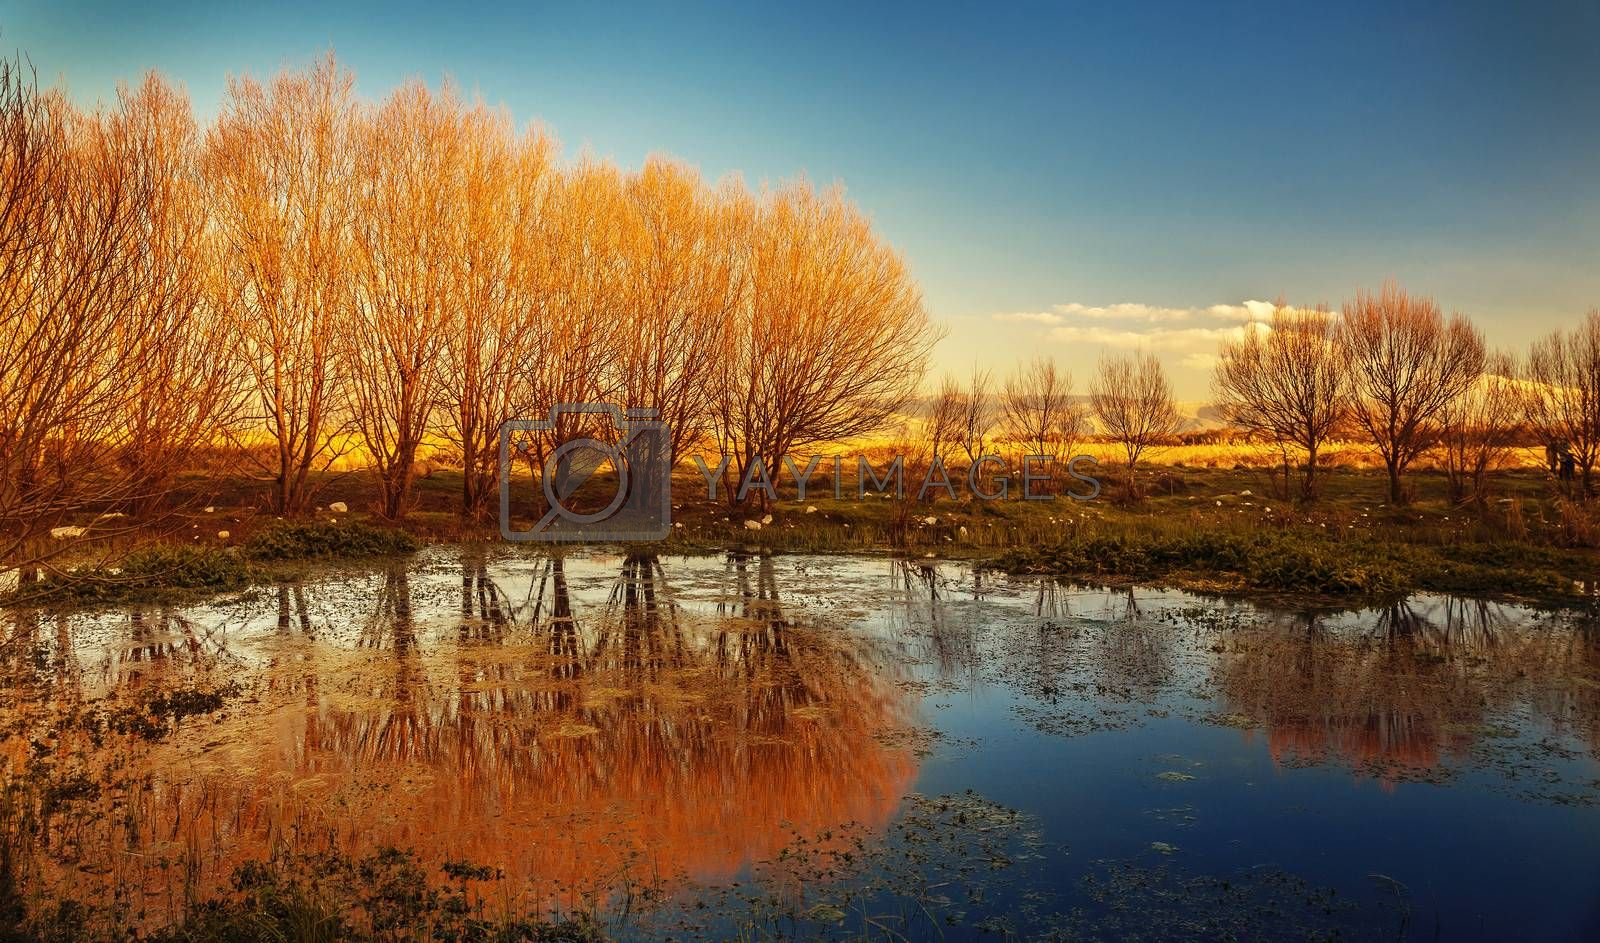 Beautiful autumn landscape, dry trees, blue sky, tree reflected in lake, seasons change, sunny day, autumnal park, fall nature